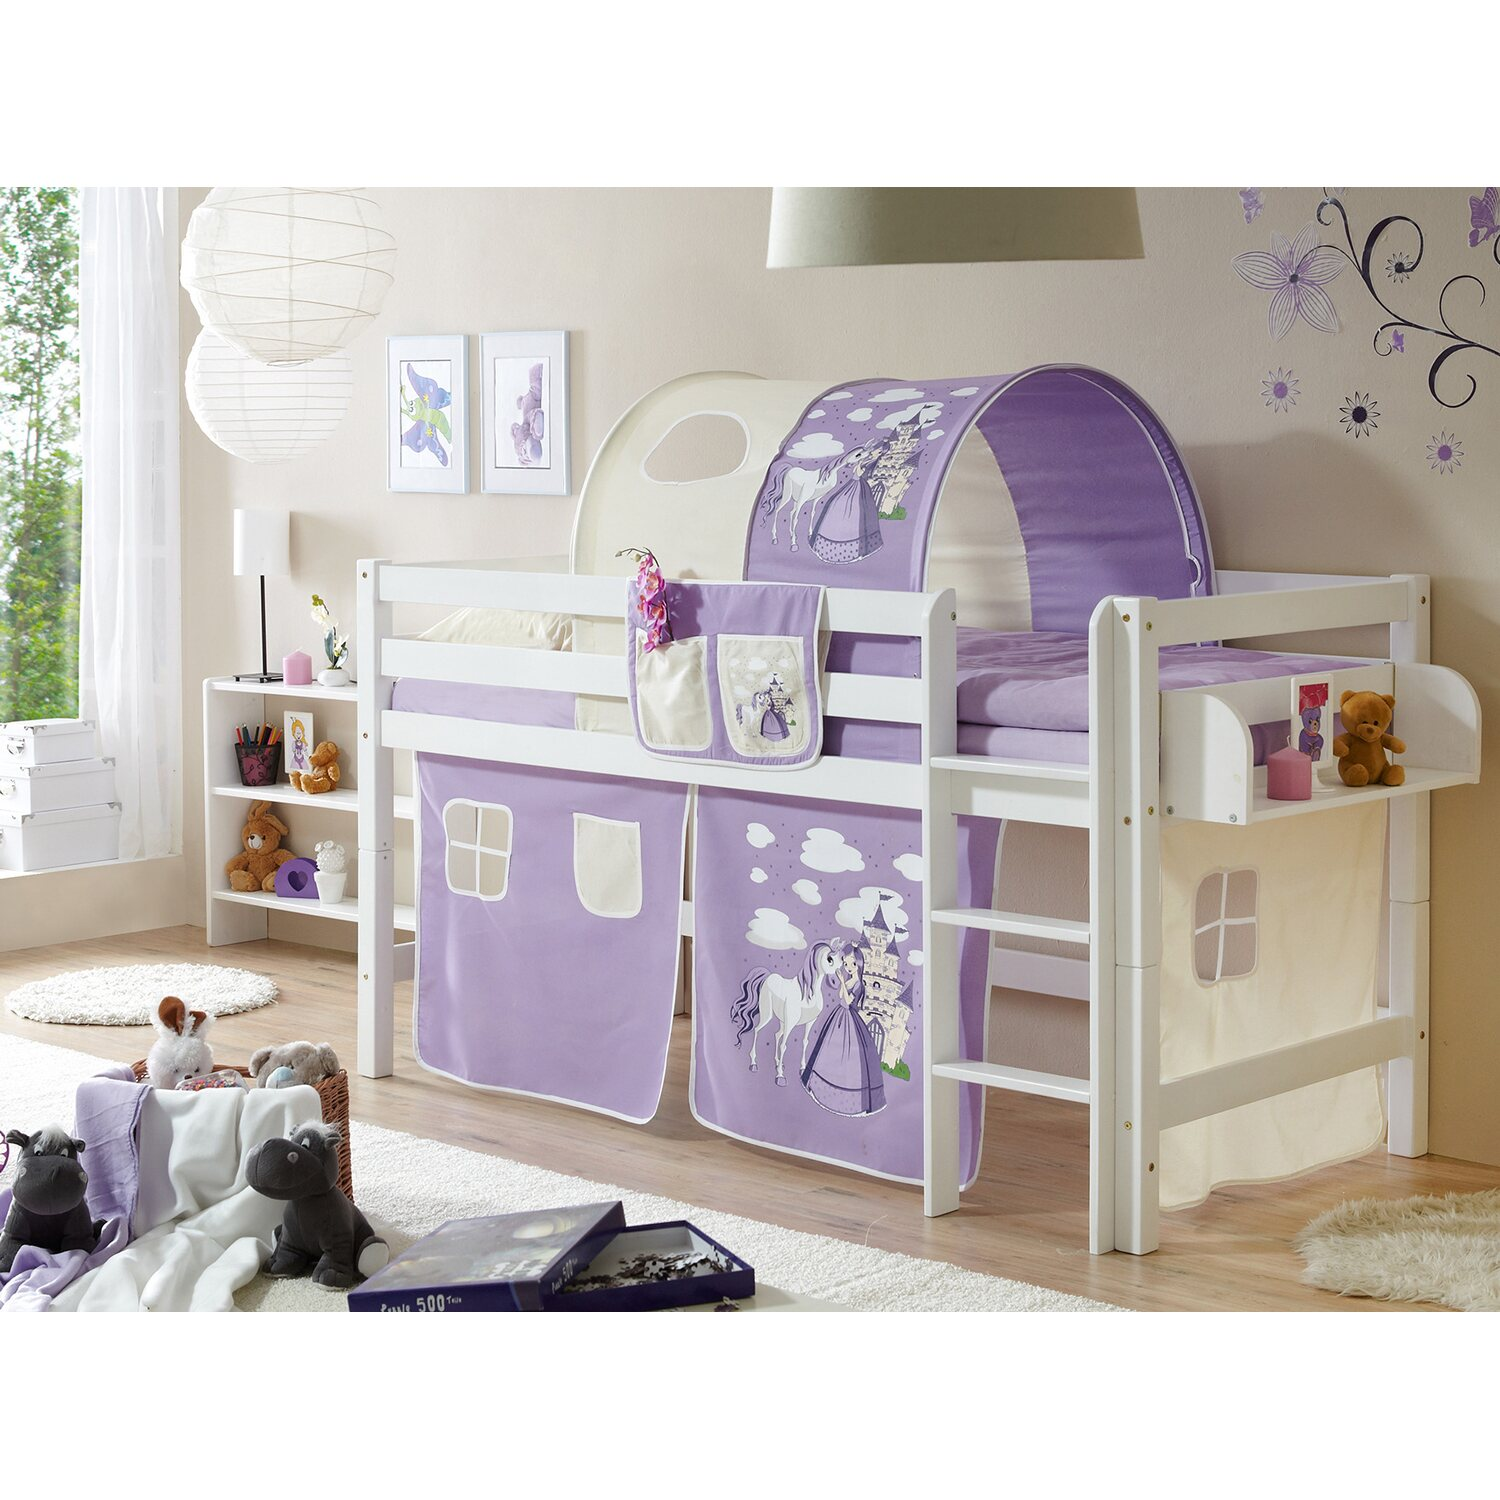 hochbett timmy buche wei horse lila kaufen bei obi. Black Bedroom Furniture Sets. Home Design Ideas